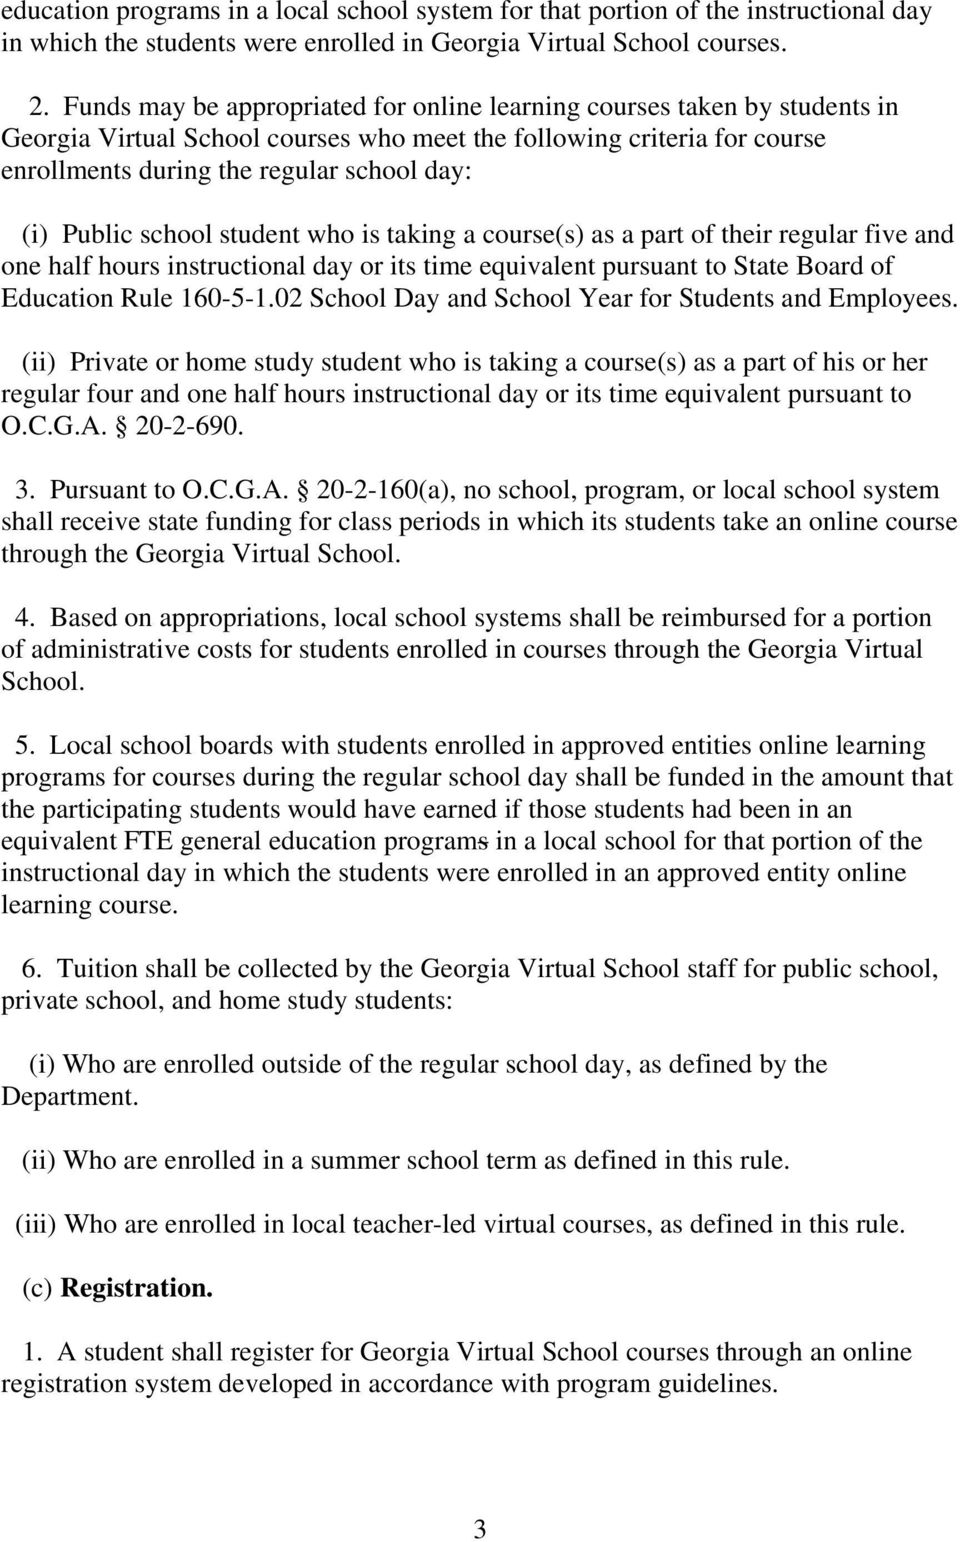 Public school student who is taking a course(s) as a part of their regular five and one half hours instructional day or its time equivalent pursuant to State Board of Education Rule 160-5-1.